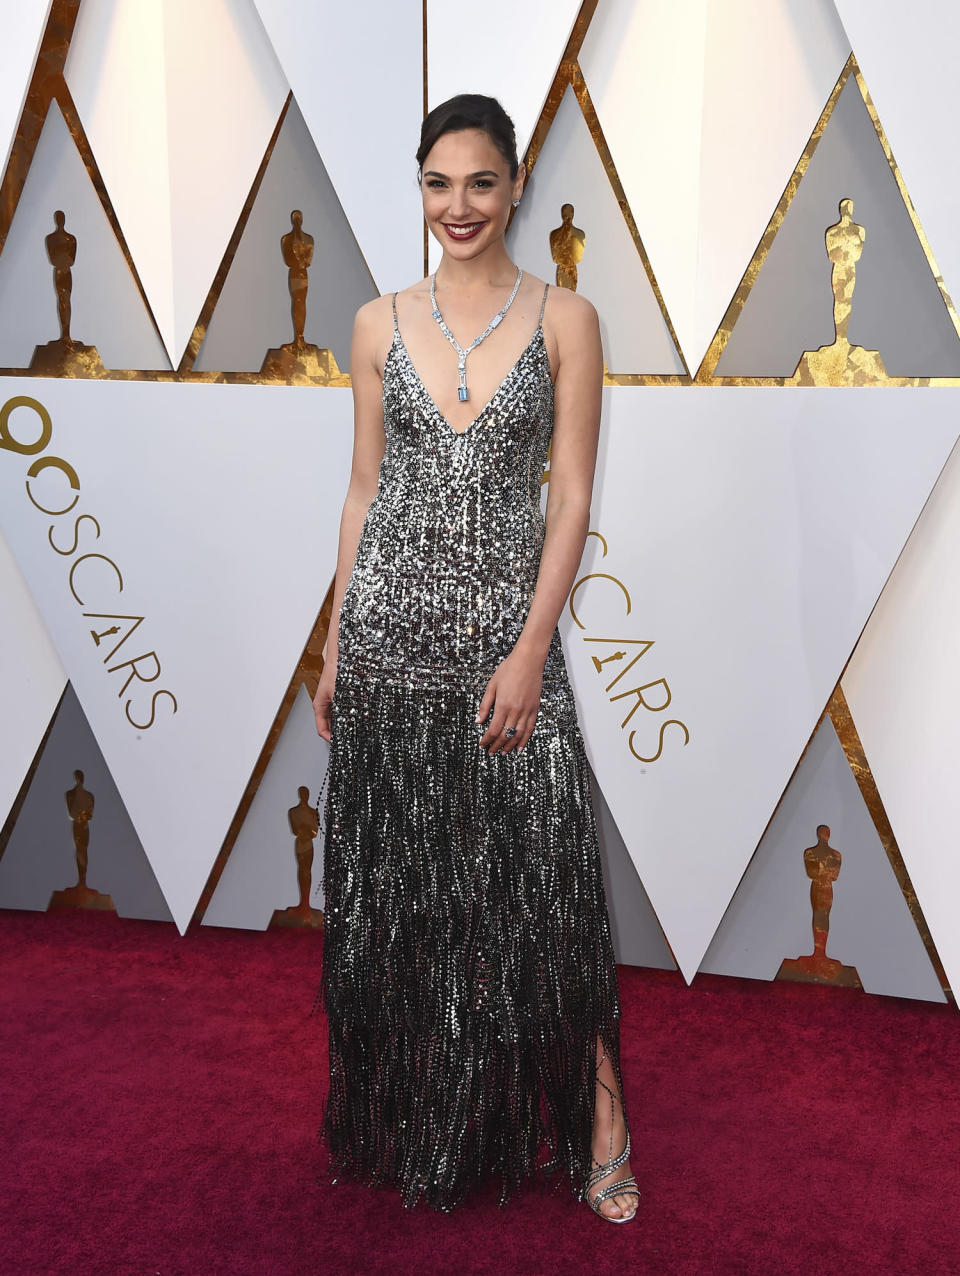 <p>Gal Gadot accessorized her decolletage with a large pendant. (Photo by Jordan Strauss/Invision/AP) </p>